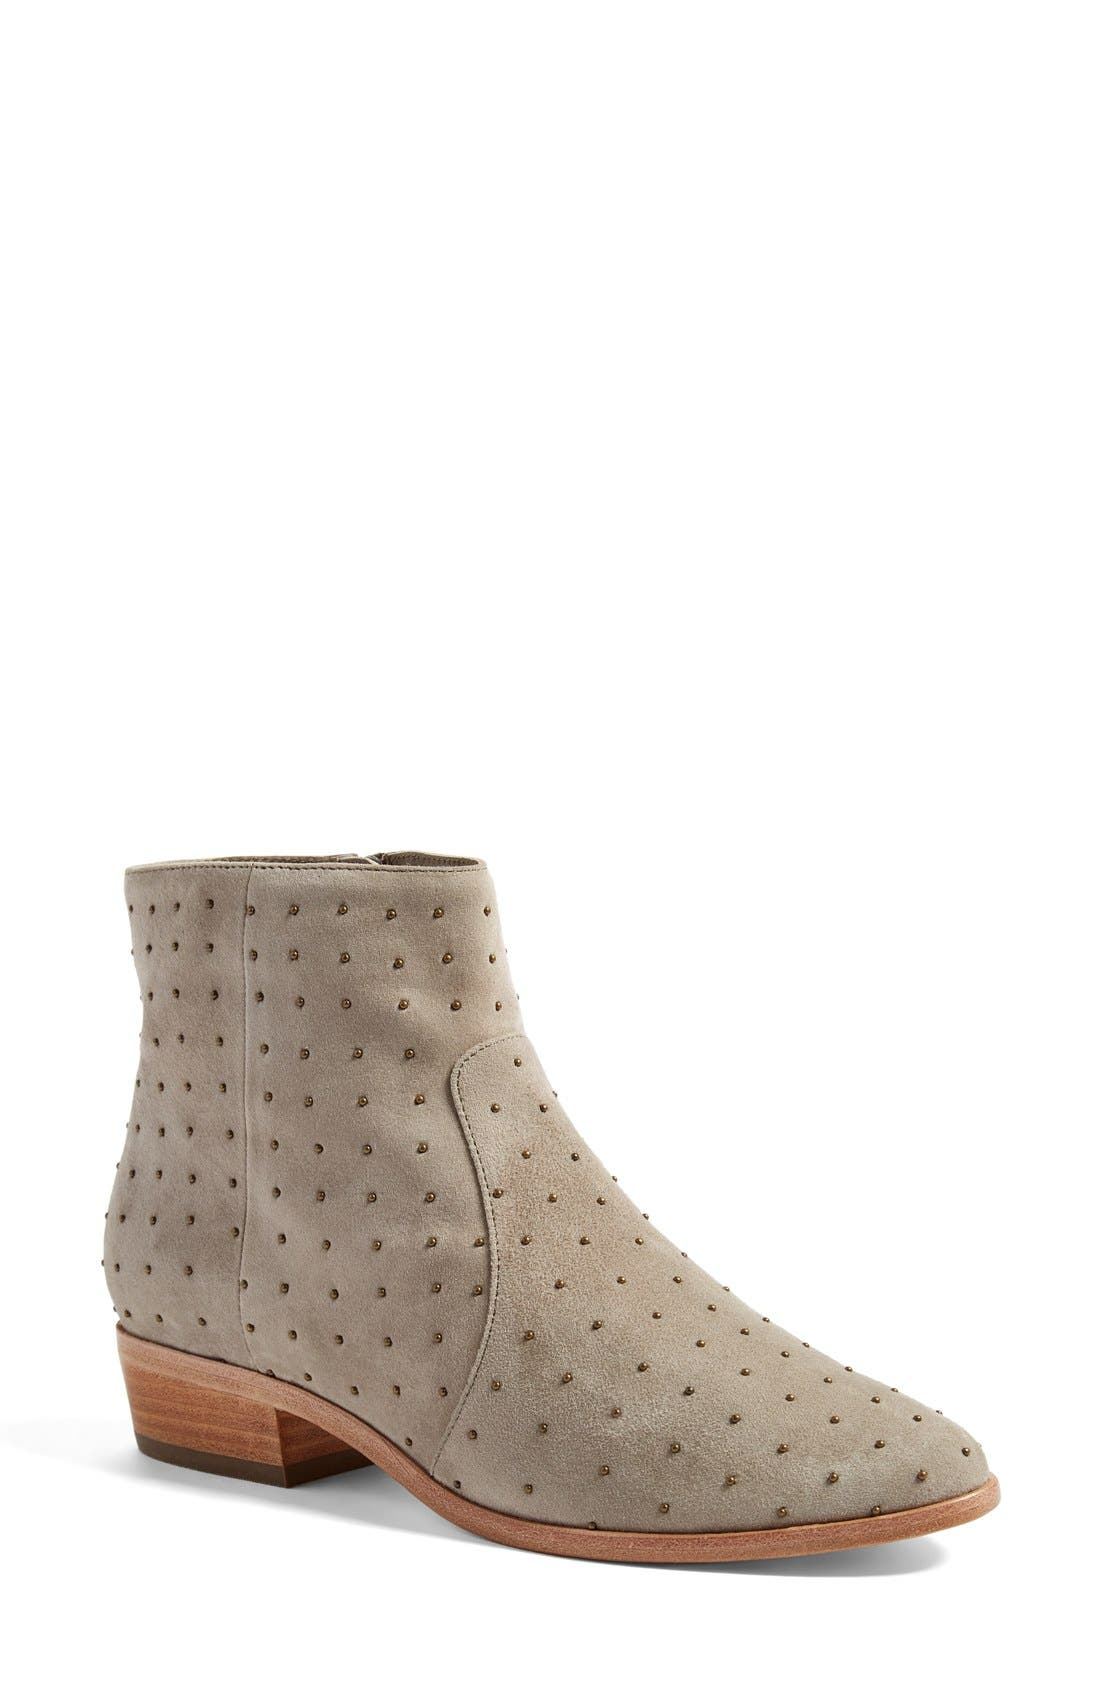 Main Image - Joie Lacole Studded Bootie (Women)